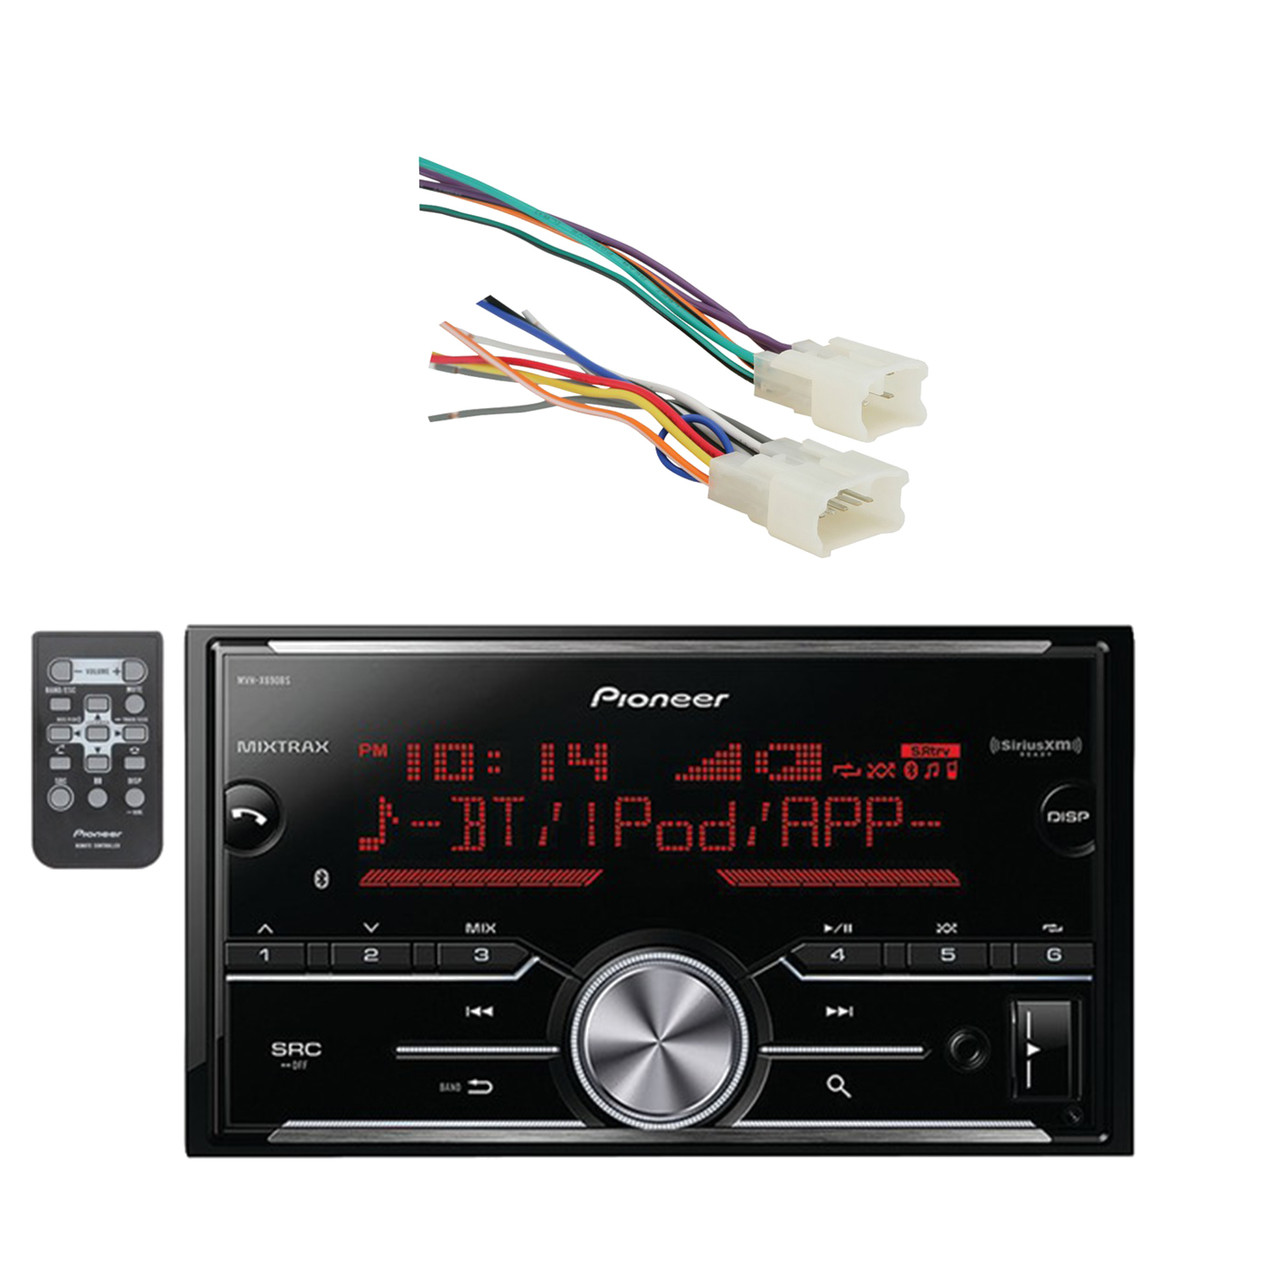 Toyota Receiver Wiring Harness Diagram Libraries 16842 Andpioneer Vehicle Digital Media Double Din With Bluetooth And Enhanced Audio Functions Black Metra Radio For 87 Up